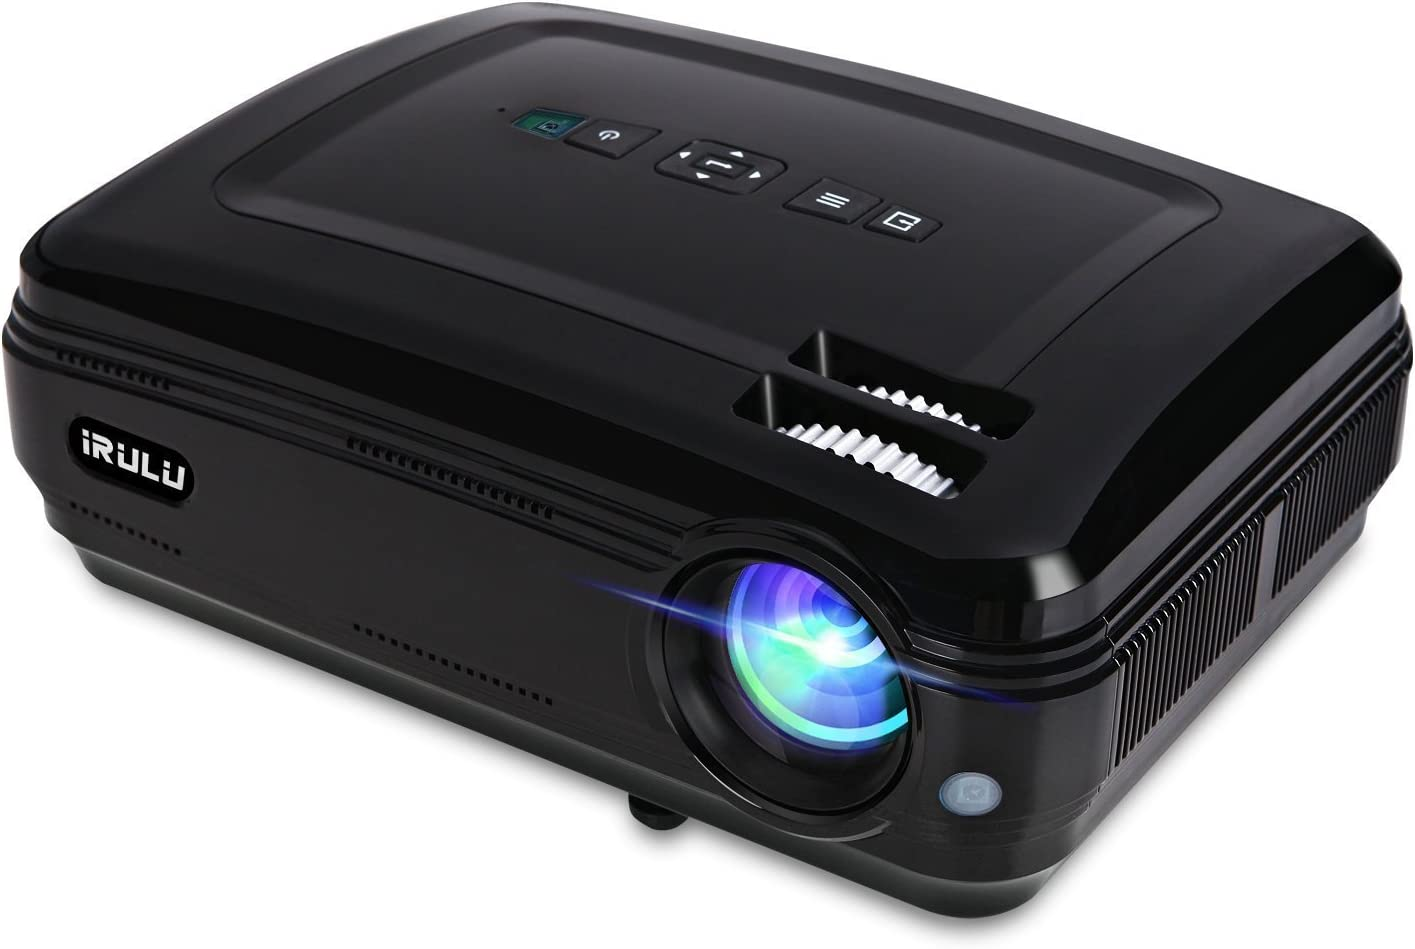 Proyector iRulu - P6 Video Projector LED 1280 x 768 HD Apoyo 1080P ...